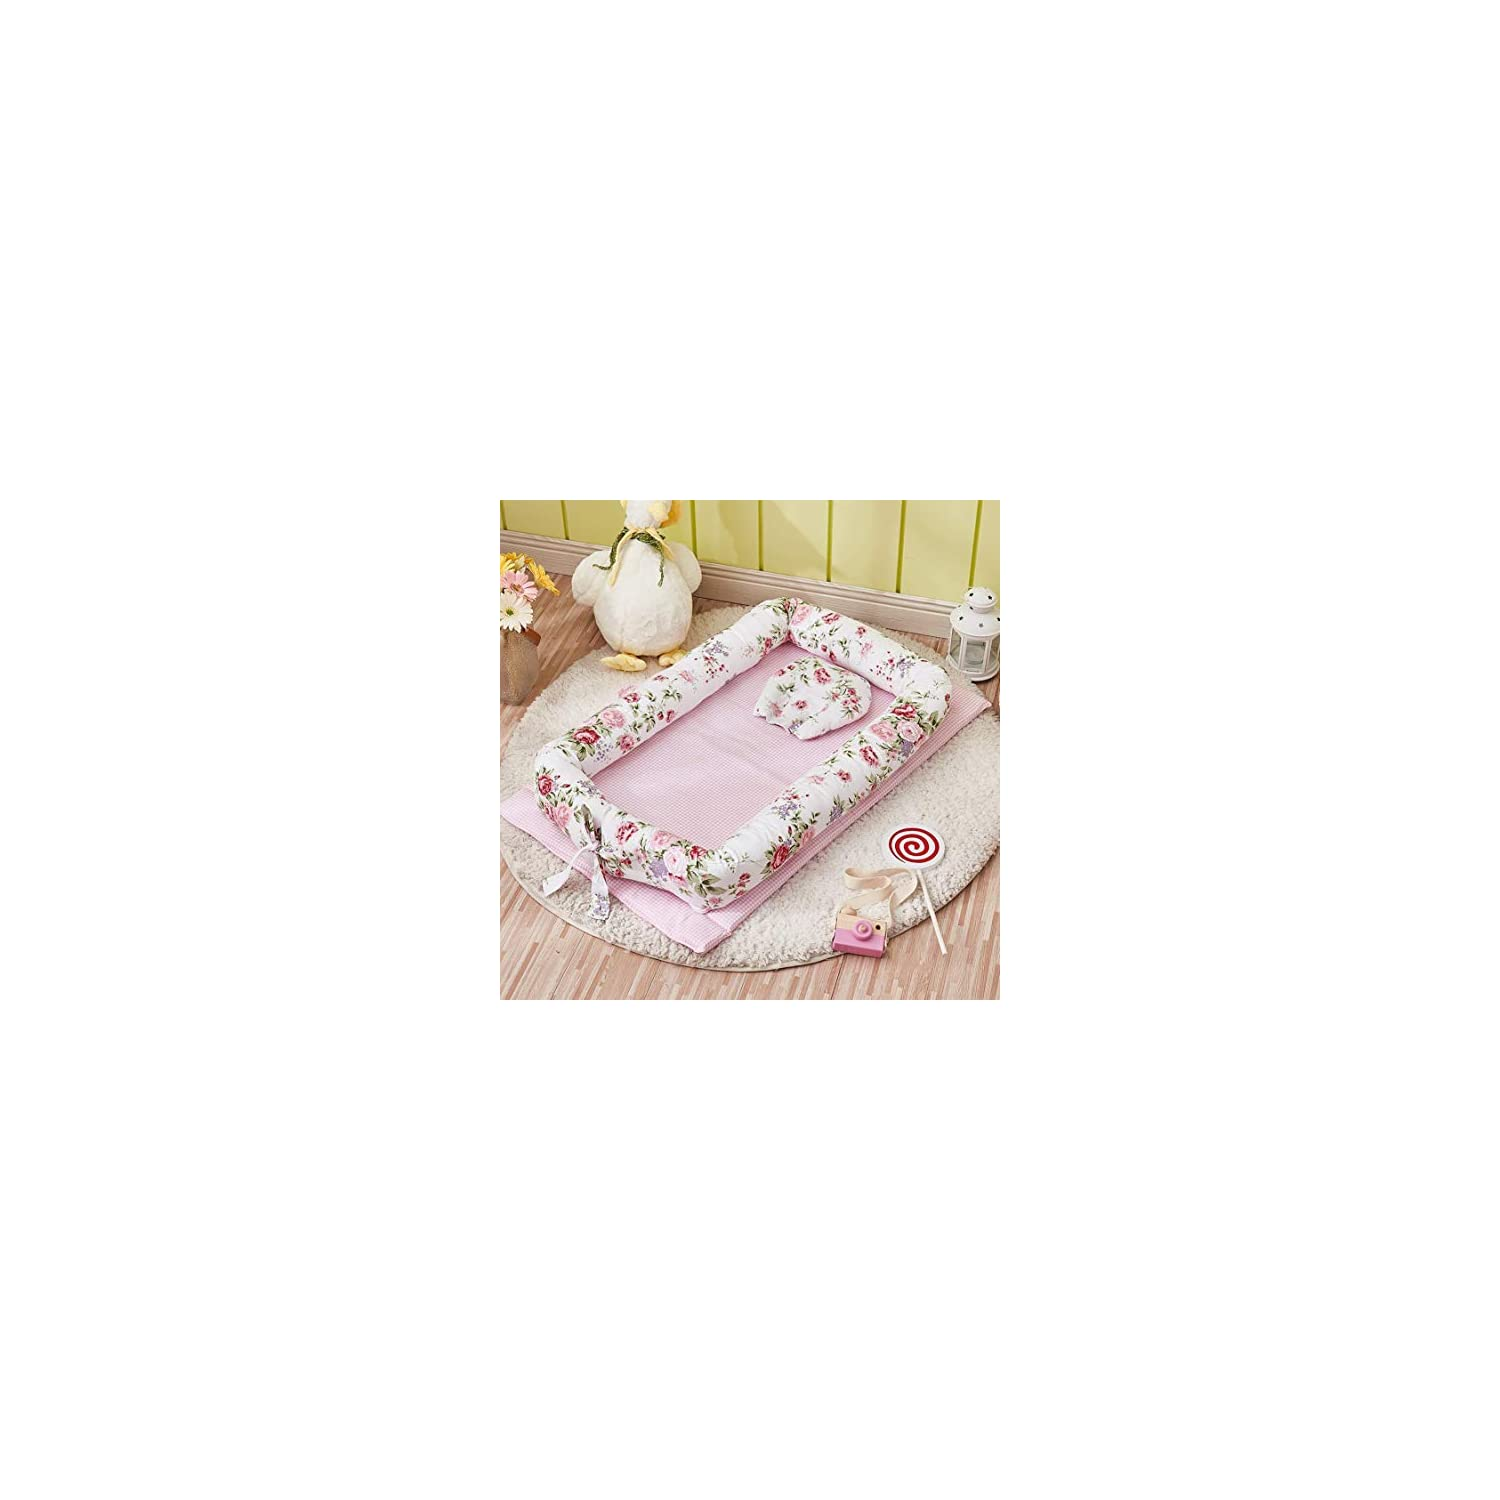 Abreeze Baby Bassinet for Bed -2PC Rose Pink Baby Lounger Including Pillow- Breathable & Hypoallergenic Co-Sleeping Baby Bed – 100% Cotton Portable Crib for Bedroom/Travel 0-24 Months